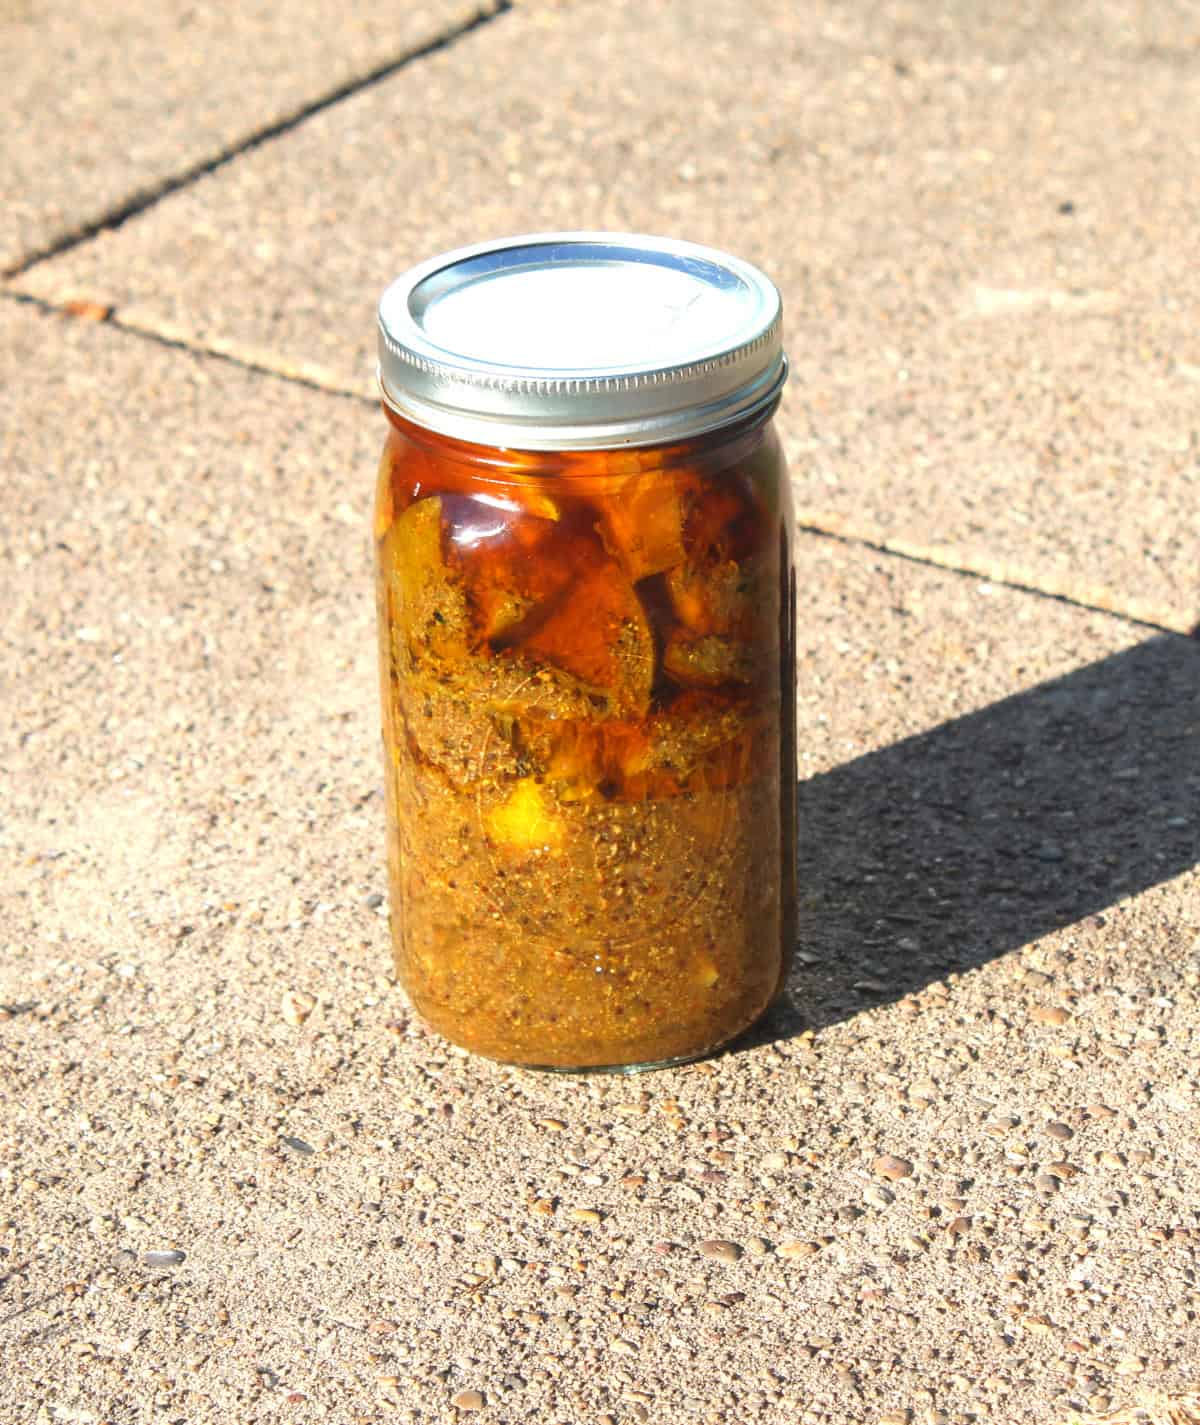 Lime pickle standing in full sun